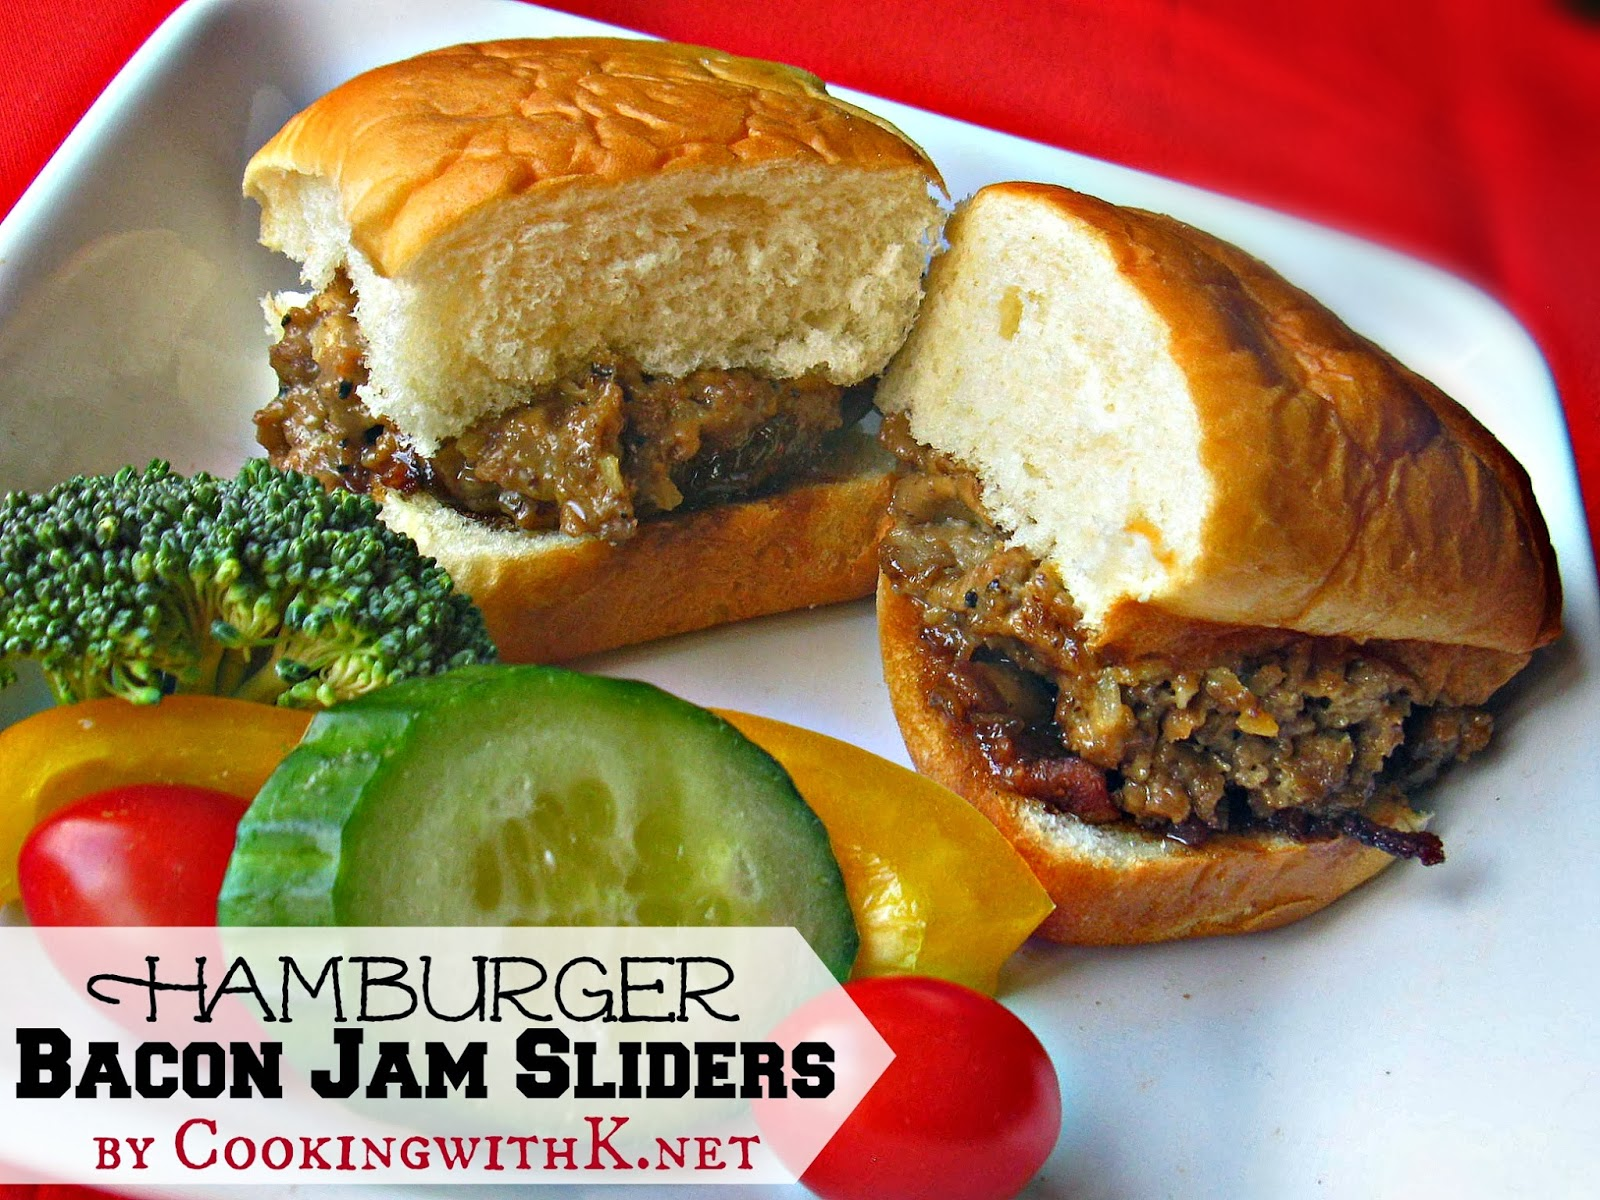 H Bacon Jam Sliders